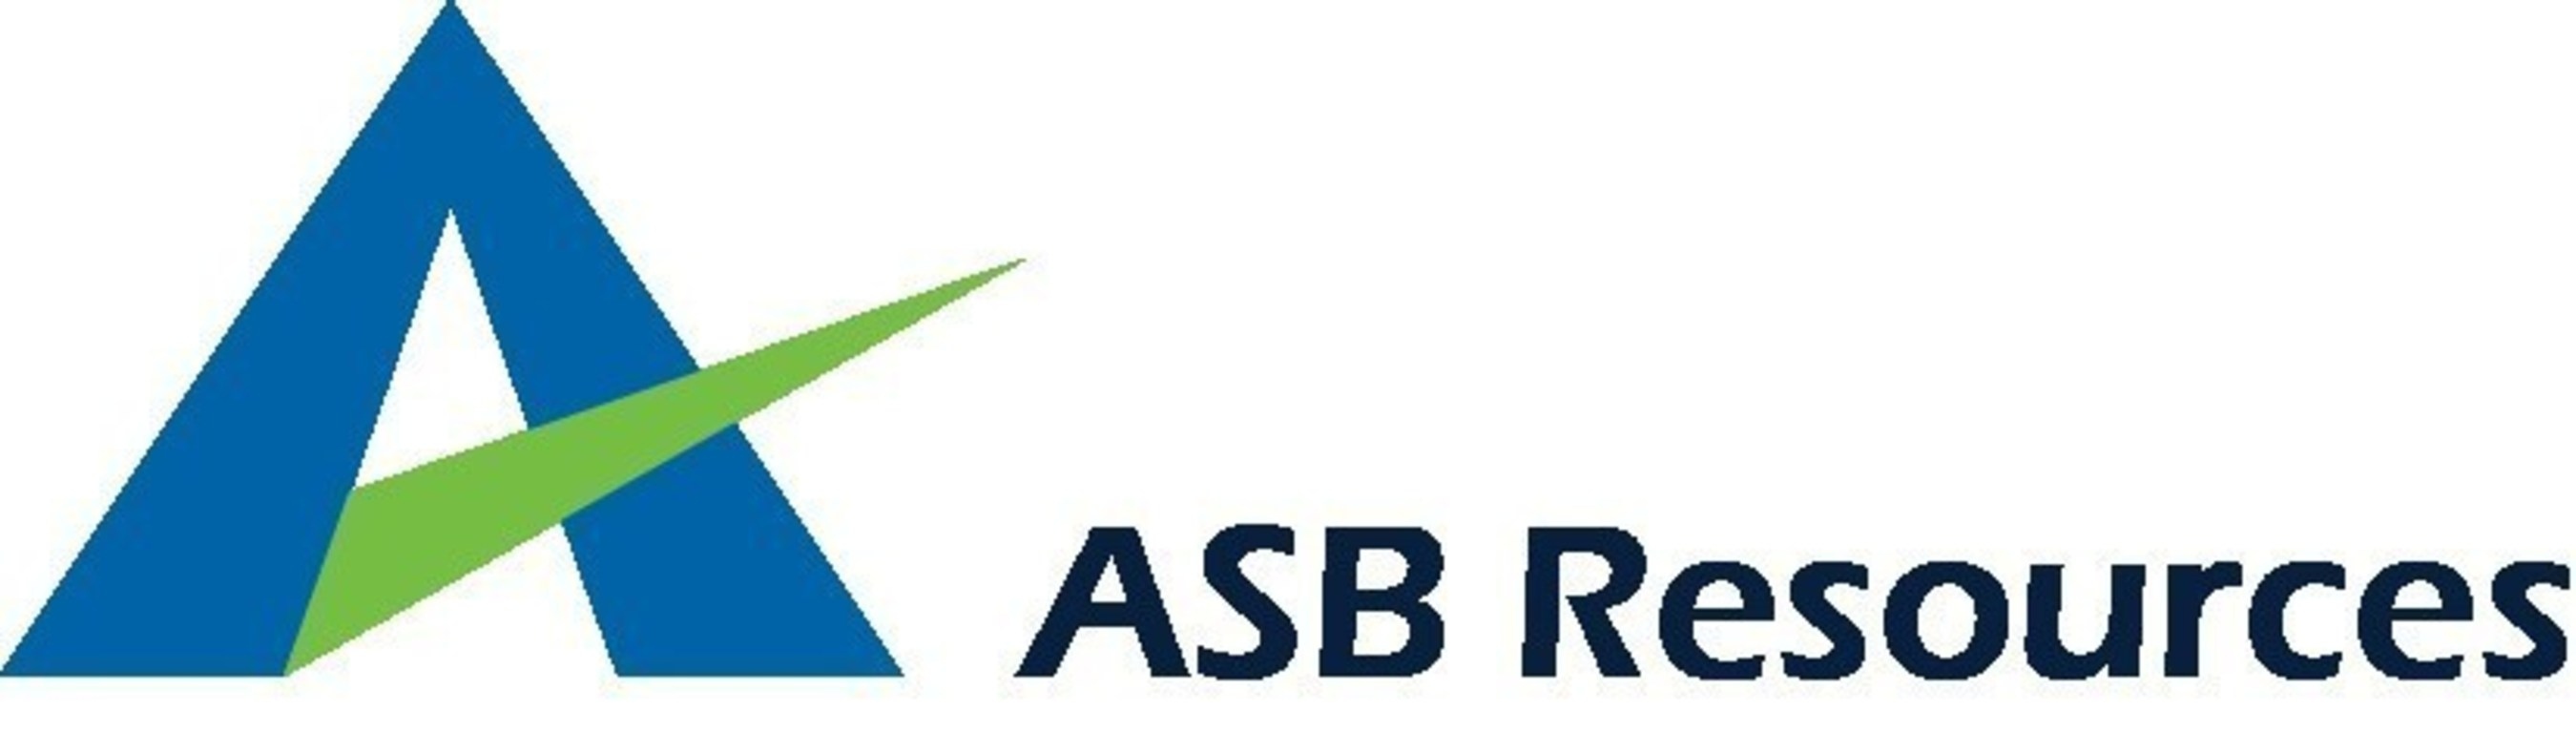 ASB Resources debuts on Inc 5000 at #1496 for year 2016